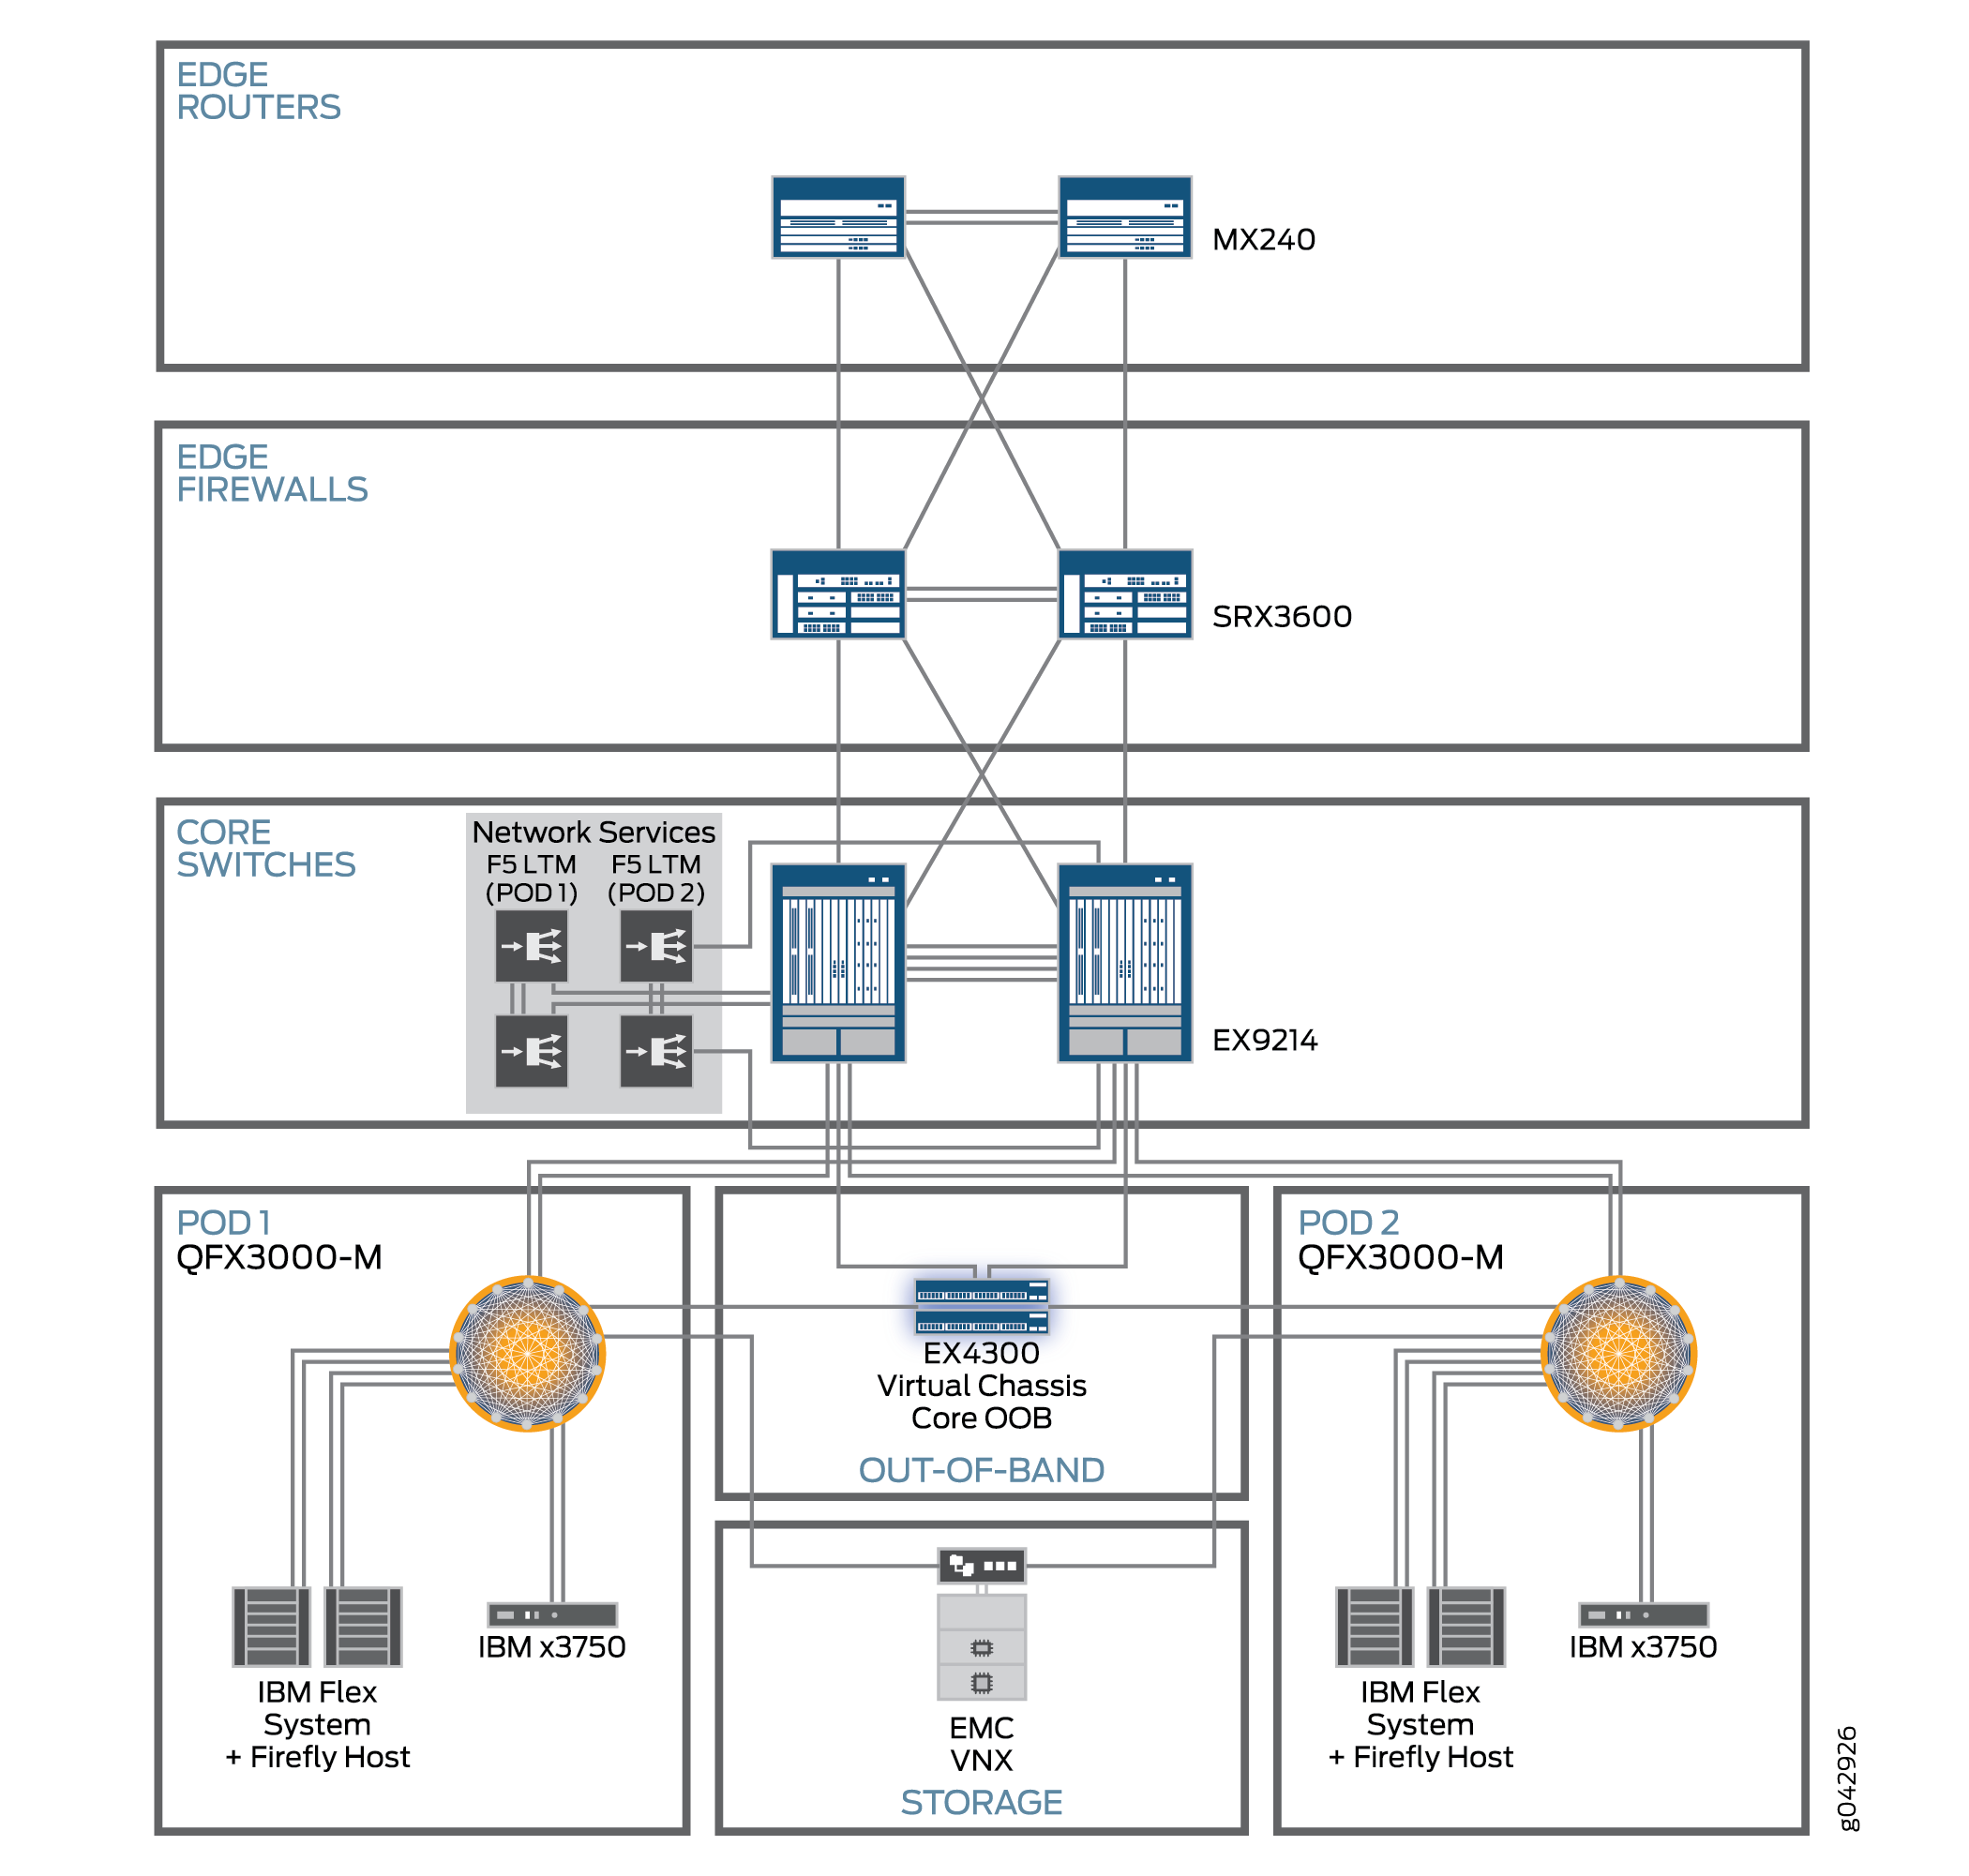 Ip Pbx Network Diagram Juniper Schematics Wiring Diagrams Representing F5 Systems In Documentation Best Free Avaya Hosted Inbox